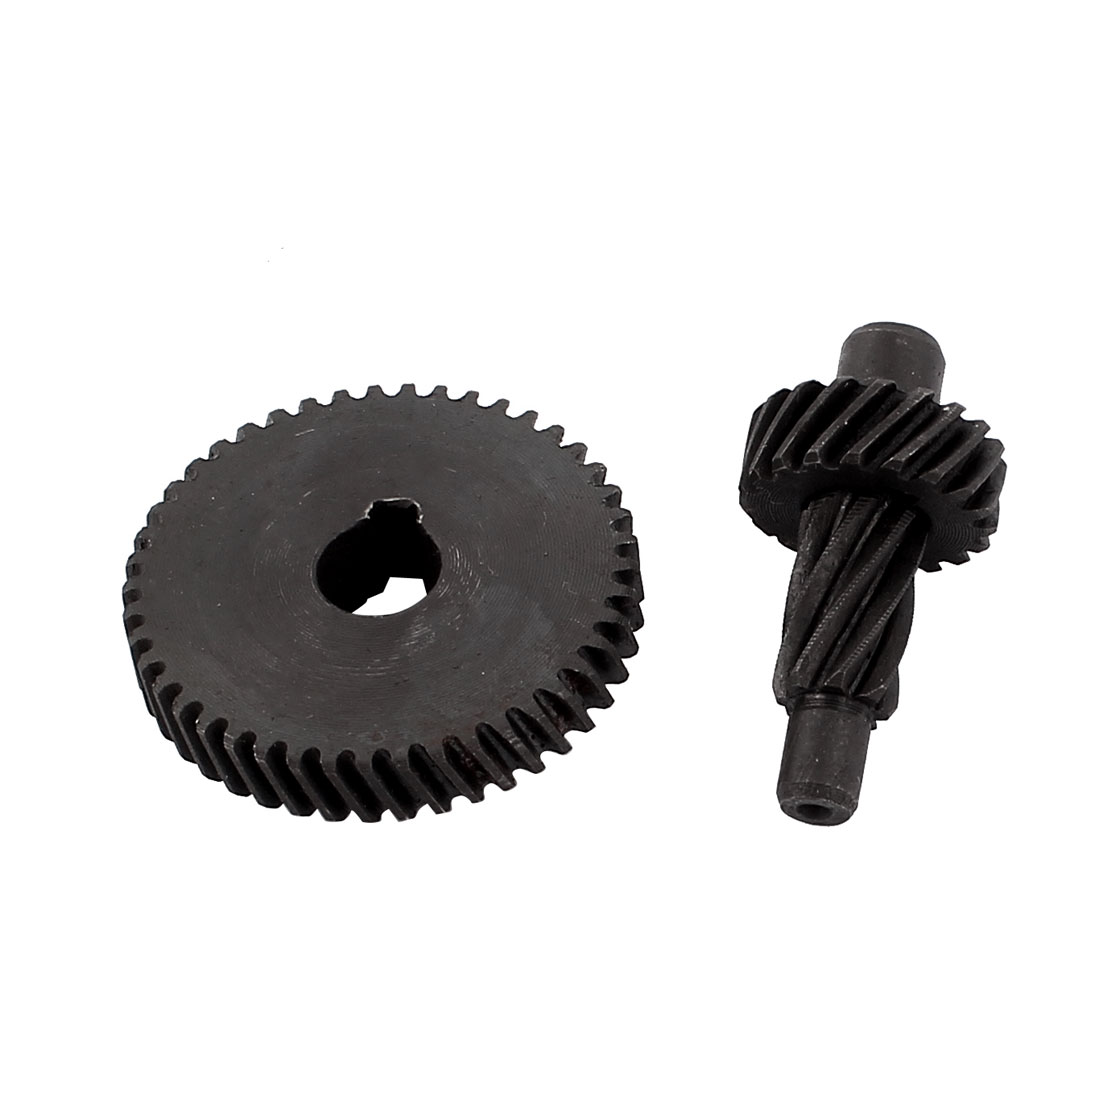 2 in 1 Spiral Helical Pinion Gear Wheel Set for General 10A Electric Hand Drill